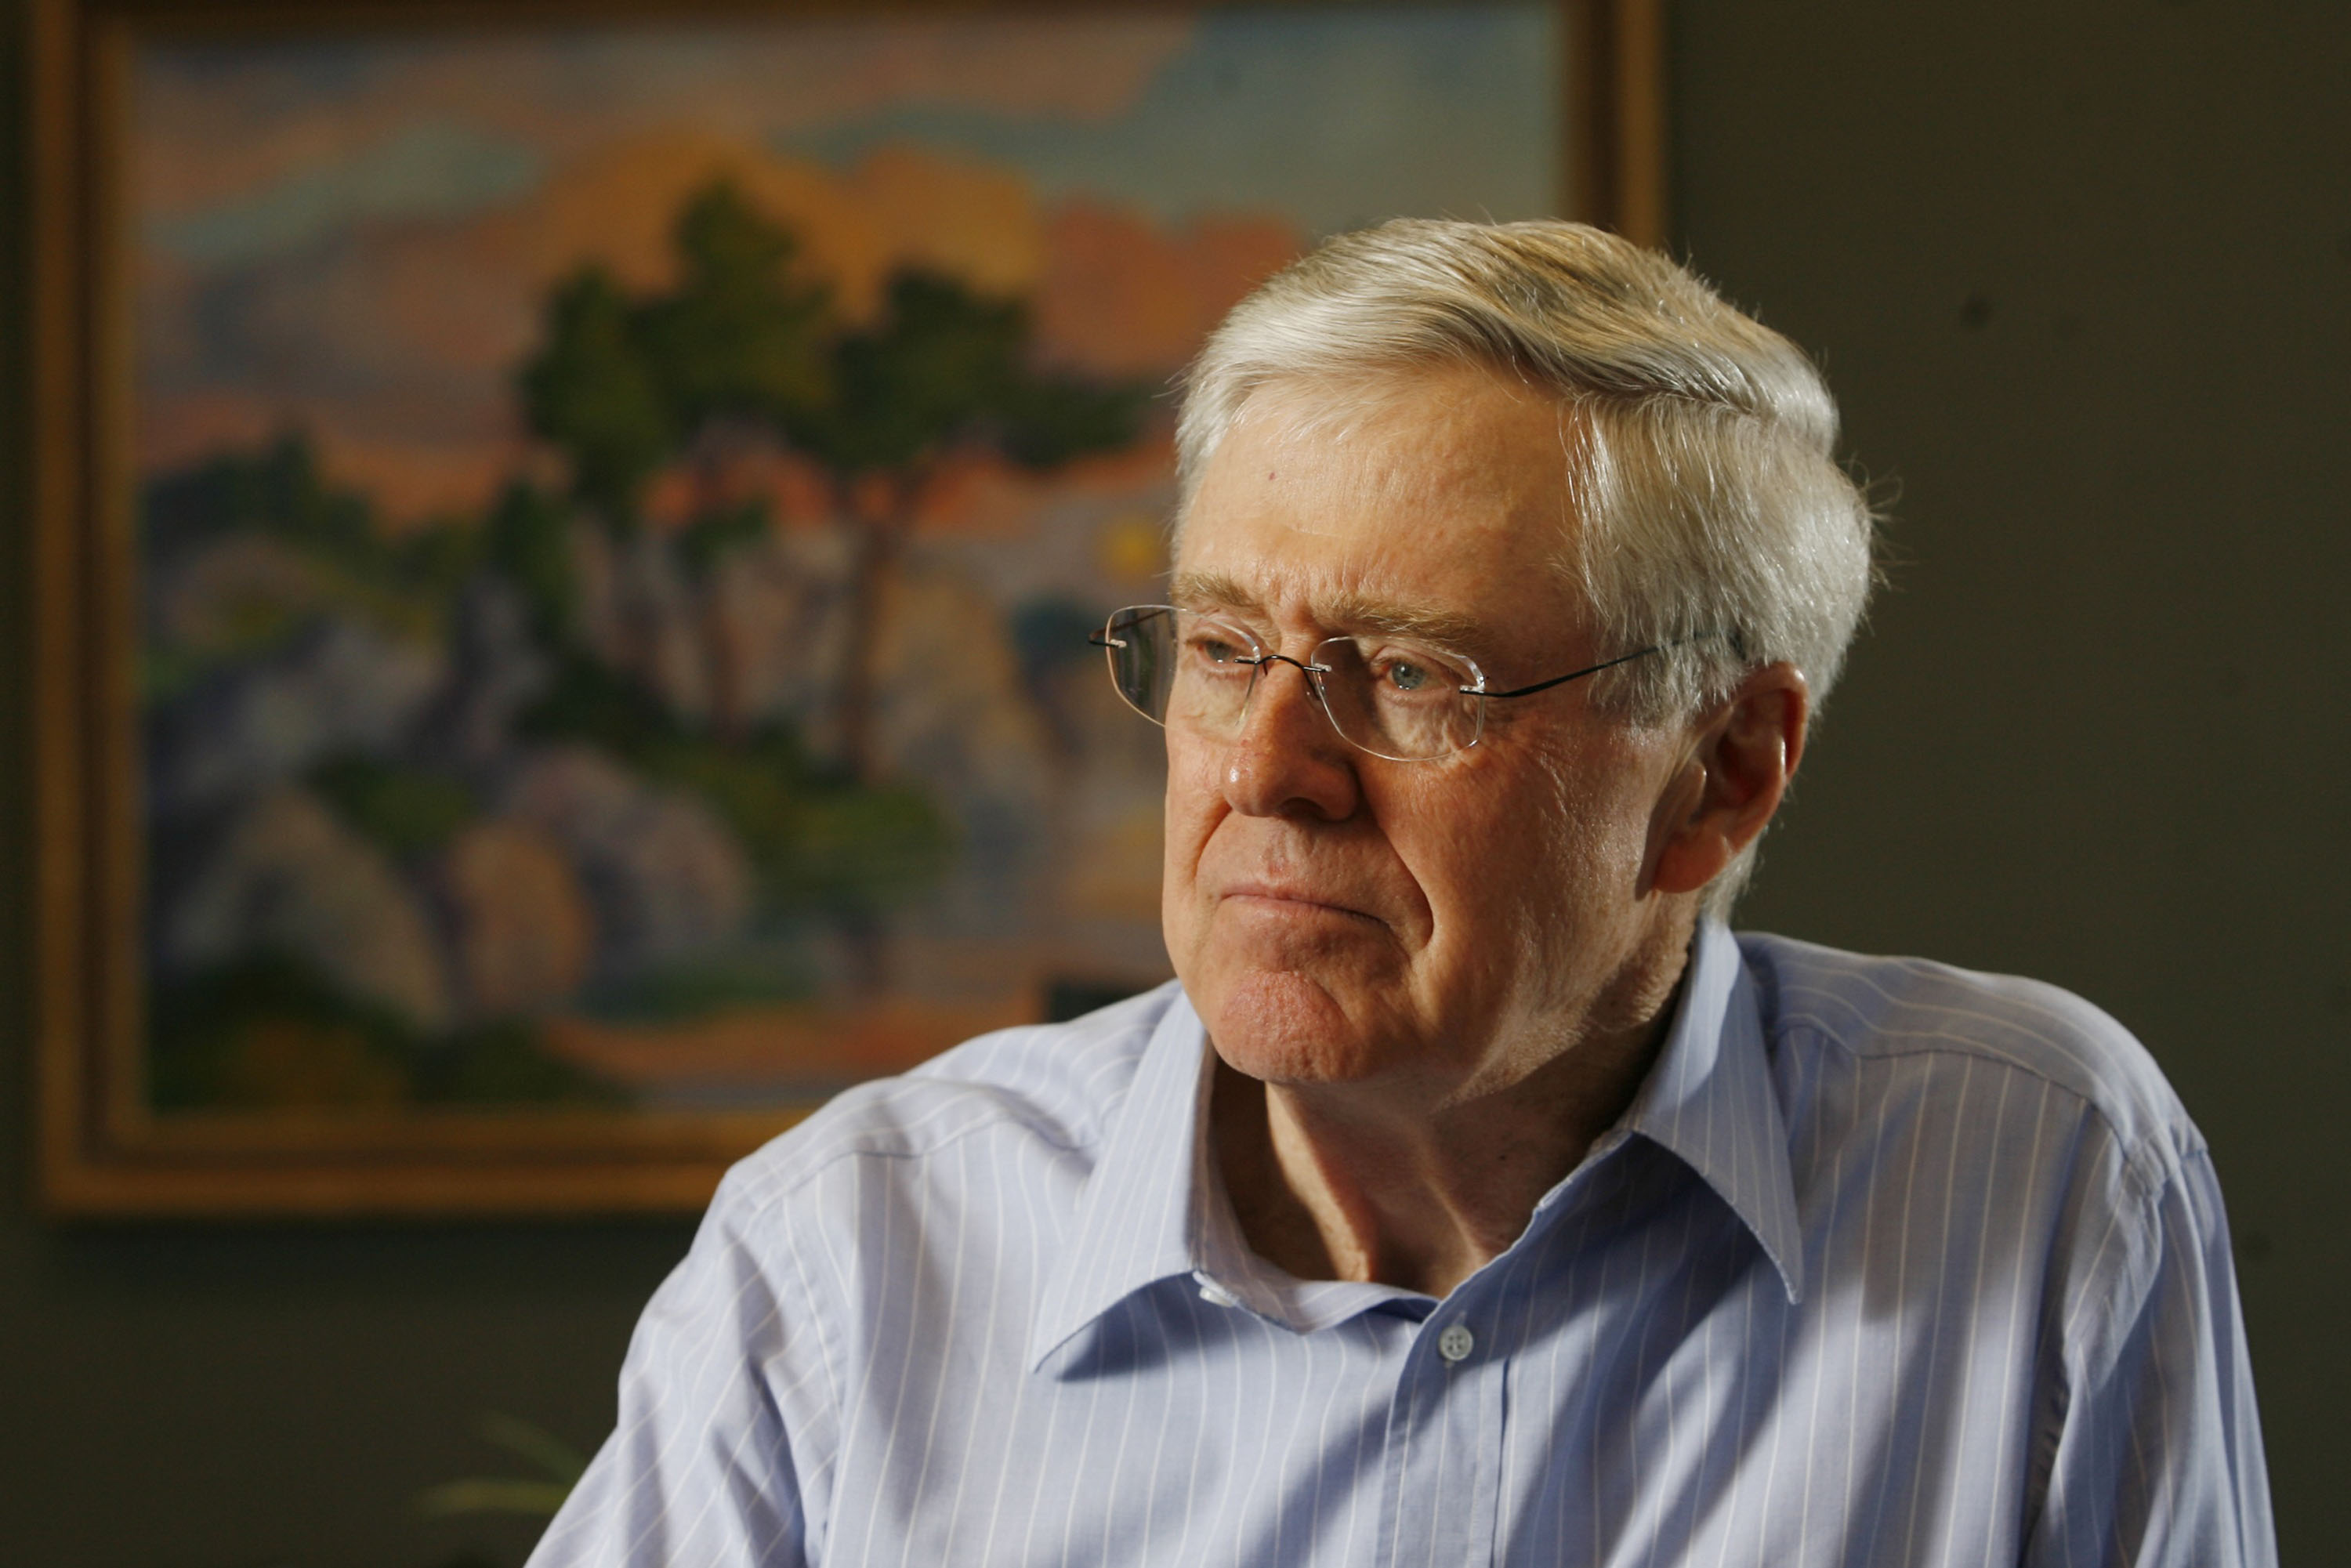 Charles Koch, head of Koch Industries, talks about his new book on Feb. 26, 2007.